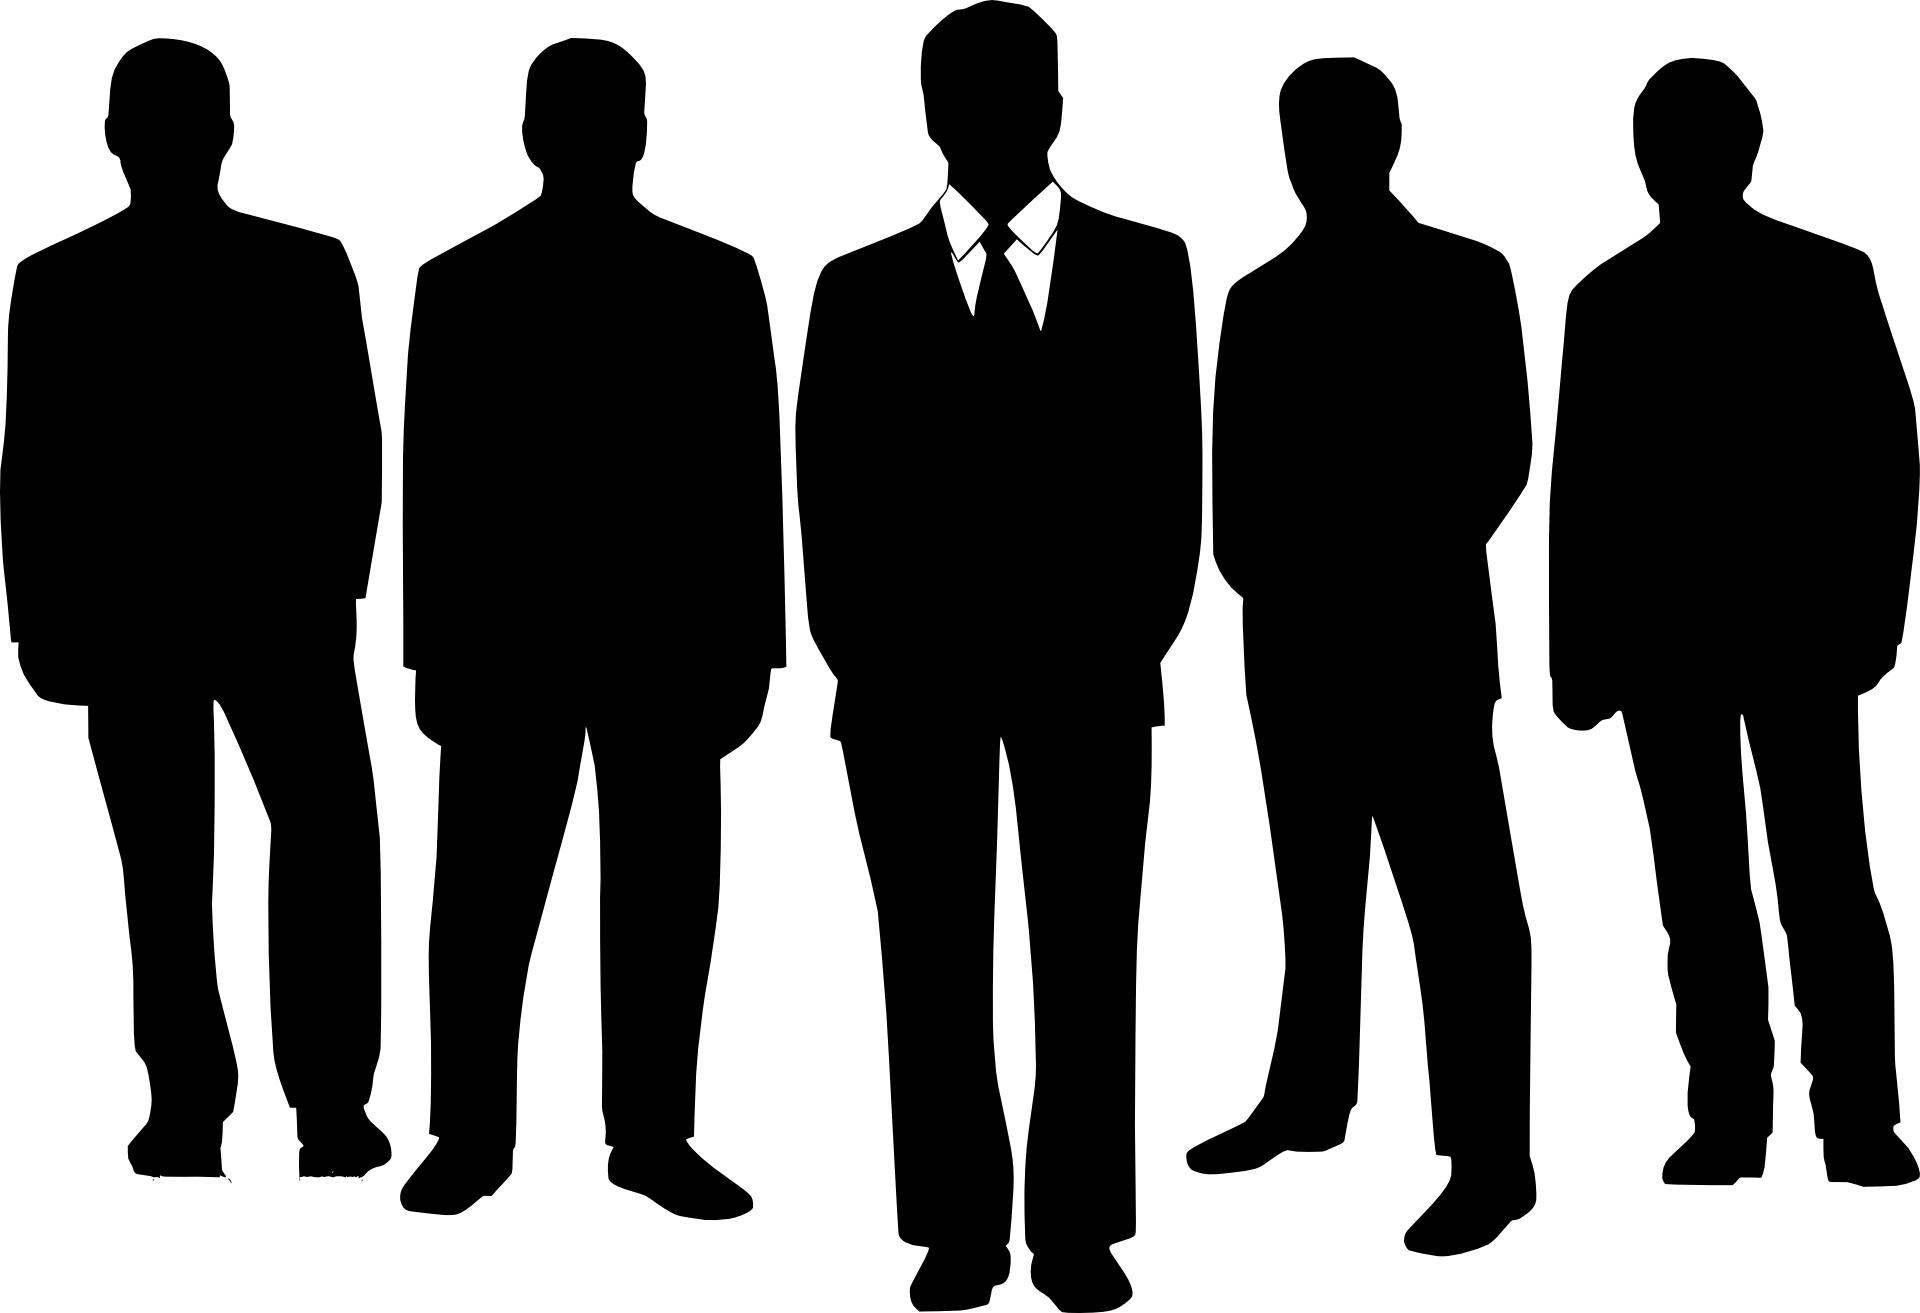 Teamwork clipart person. Men in suits clip